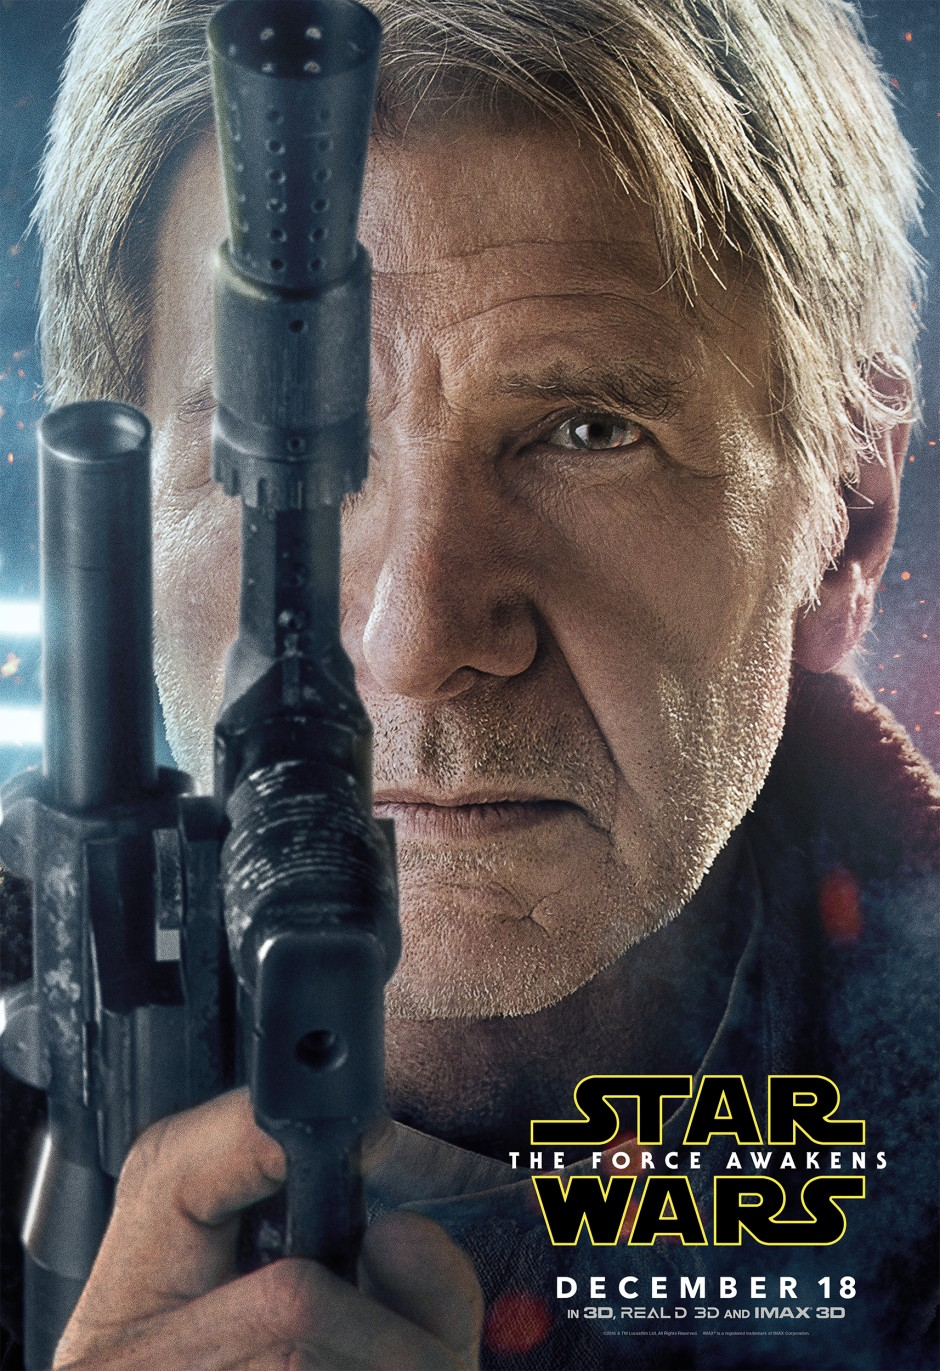 Star Wars: The Force Awakens Movie Poster - Han Solo